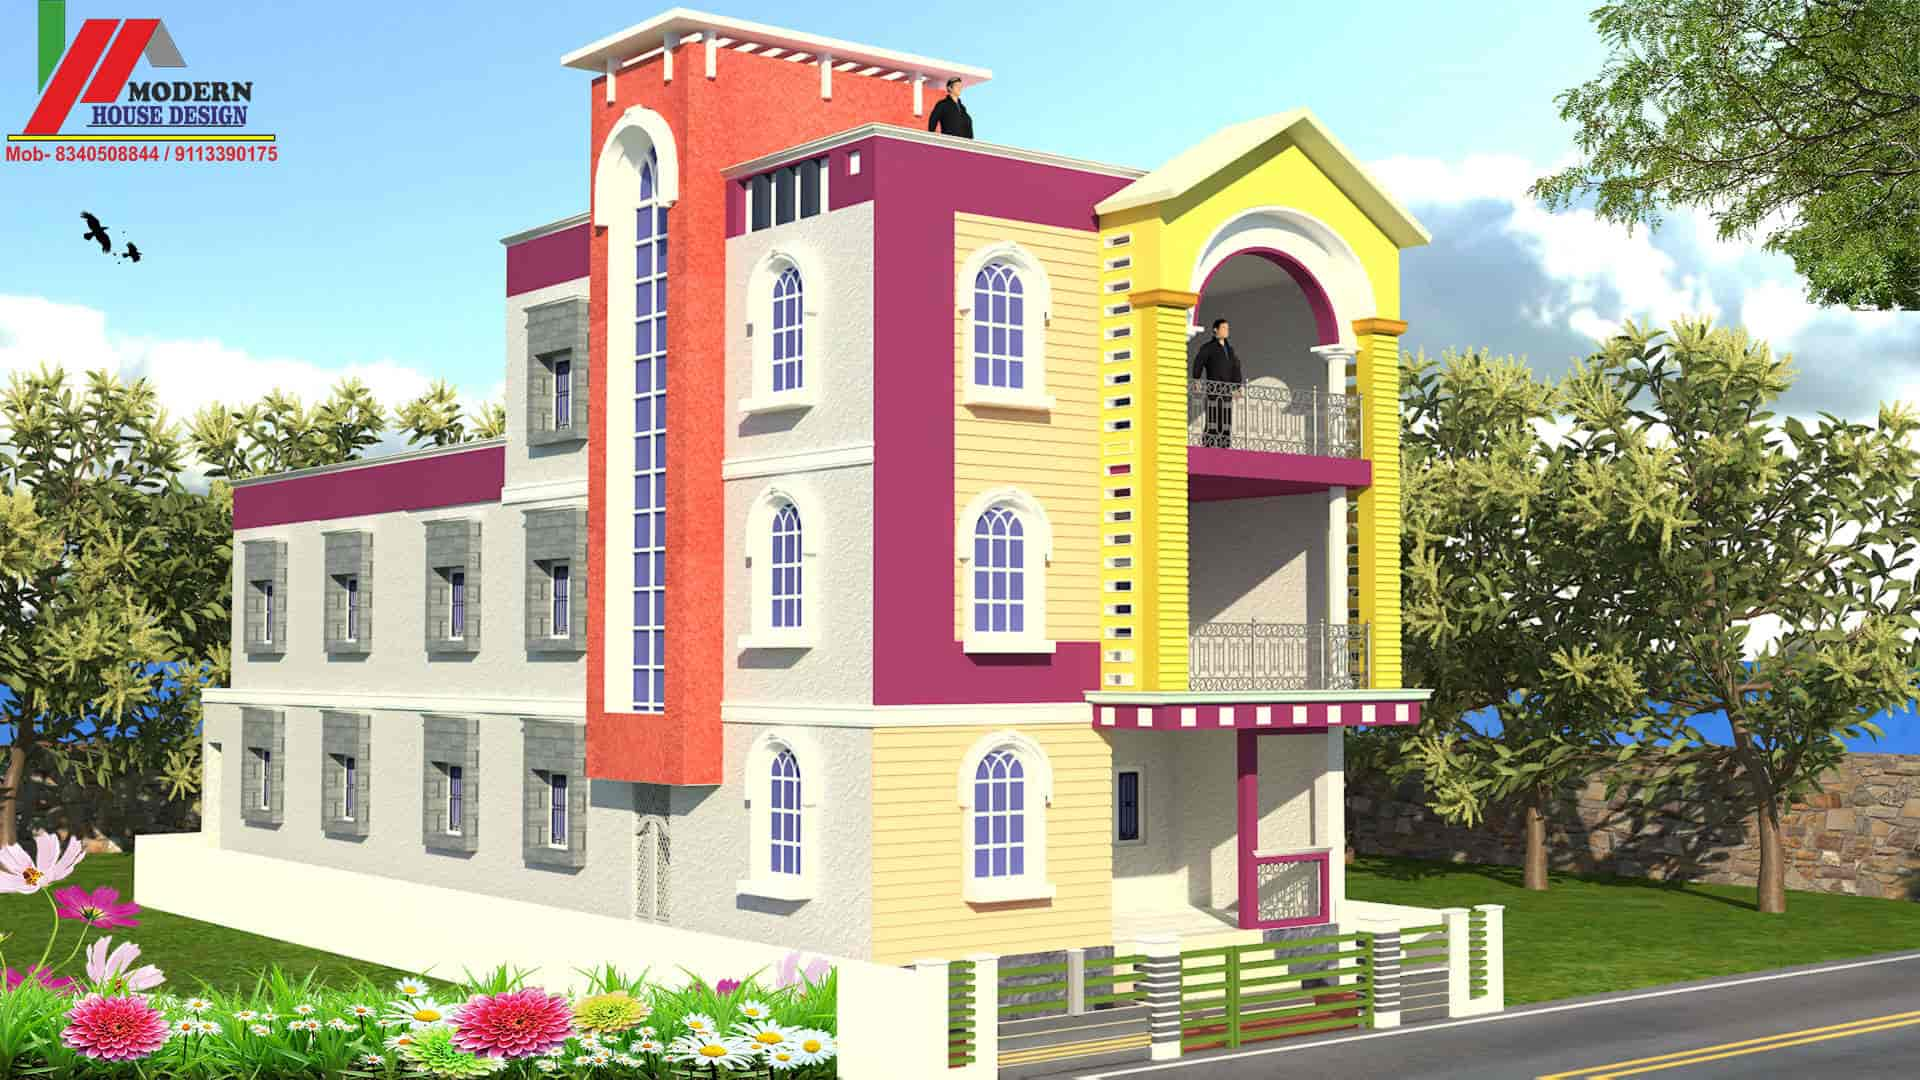 Modern House Design And Consultant - Architects in Muzaffarpur ... on residential building, apps for house plans, canal front house plans, title 24 house plans, roadside house plans, simplex house plans, high density house plans, architectural house plans, residential home kits, unique small house plans, storefront house plans, house plans house plans, construction plans, custom home plans, 2400 sqft house plans, home house plans, simple house plans, luxury 4 bedroom house plans, decorative house plans, mediterranean house plans,